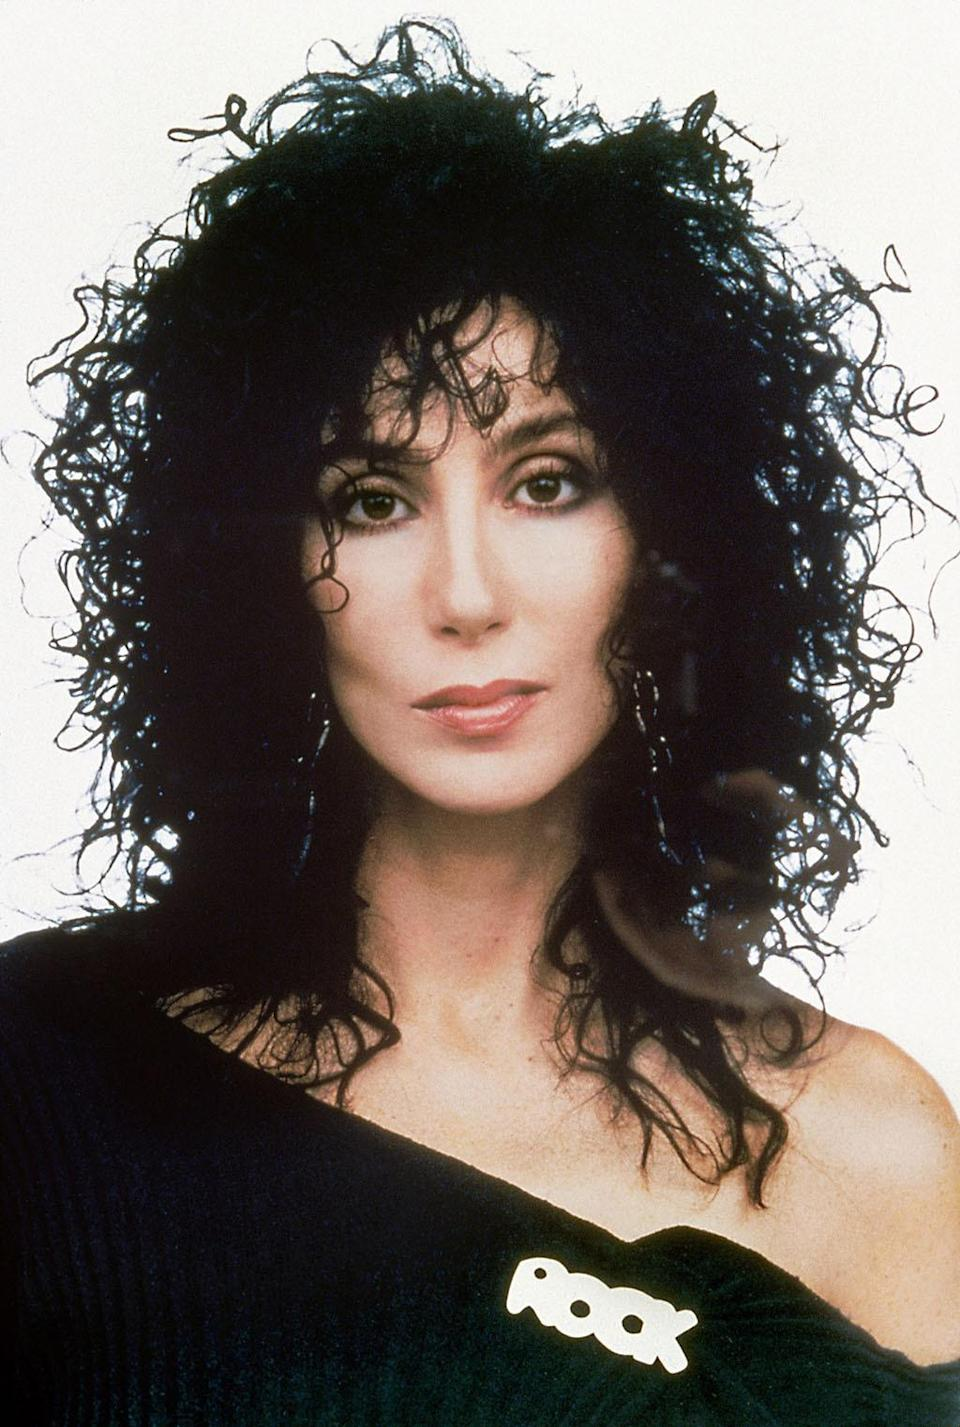 <p>Also from 1987 is this classic, with Cher sporting the wet look, smoky eyes, and a classic off-the-shoulder top. <i>(Photo: Everett Collection)</i></p>